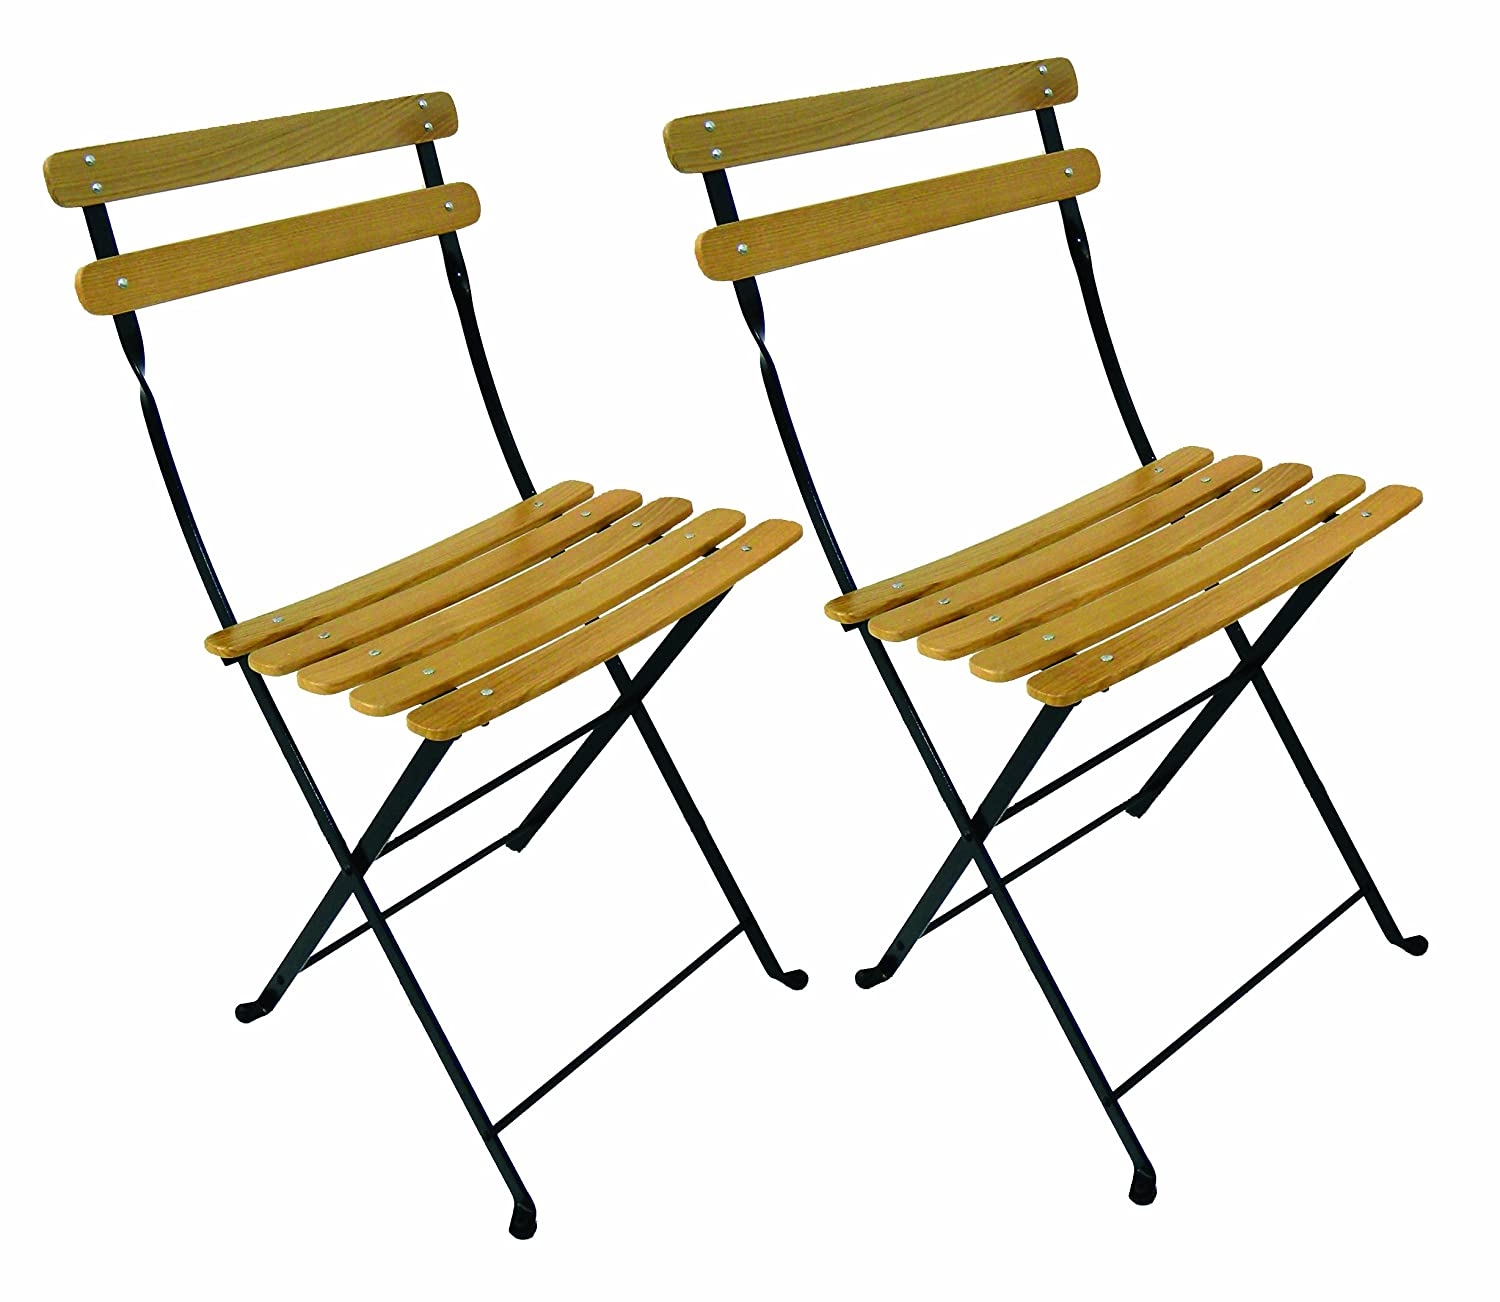 Beautiful Amazon.com : Mobel Designhaus French Café Bistro Folding Side Chair, Jet  Black Frame, Clear Painted European Chestnut Wood Slats (Pack Of 2) :  Wrought Iron ...